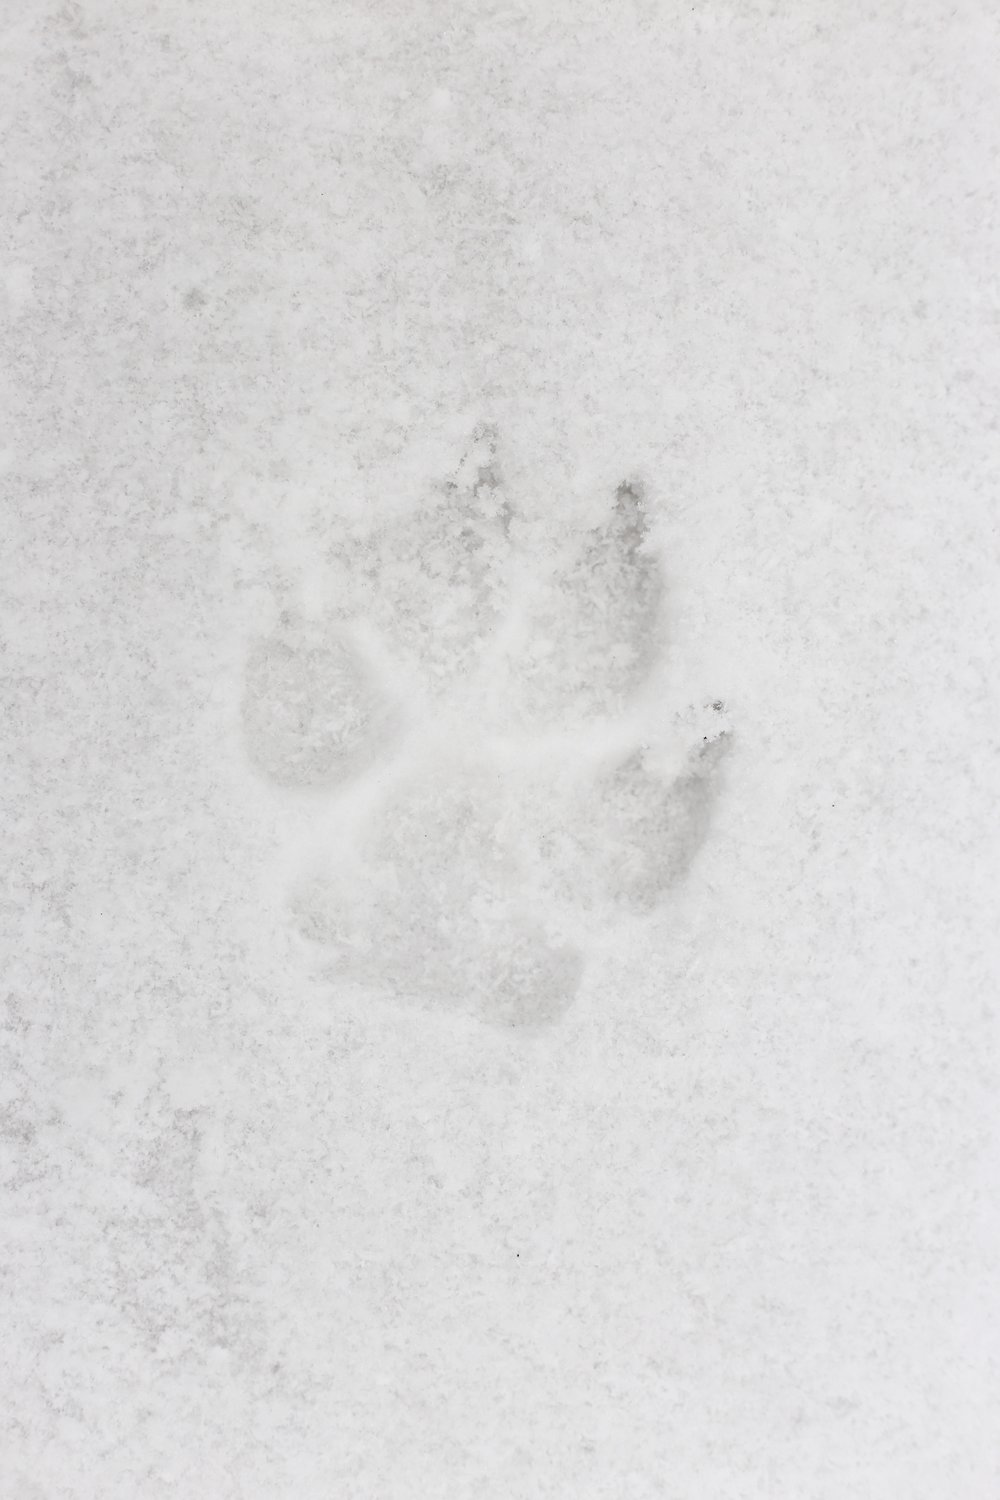 Wolf print in the snow, in a Romanian forest.